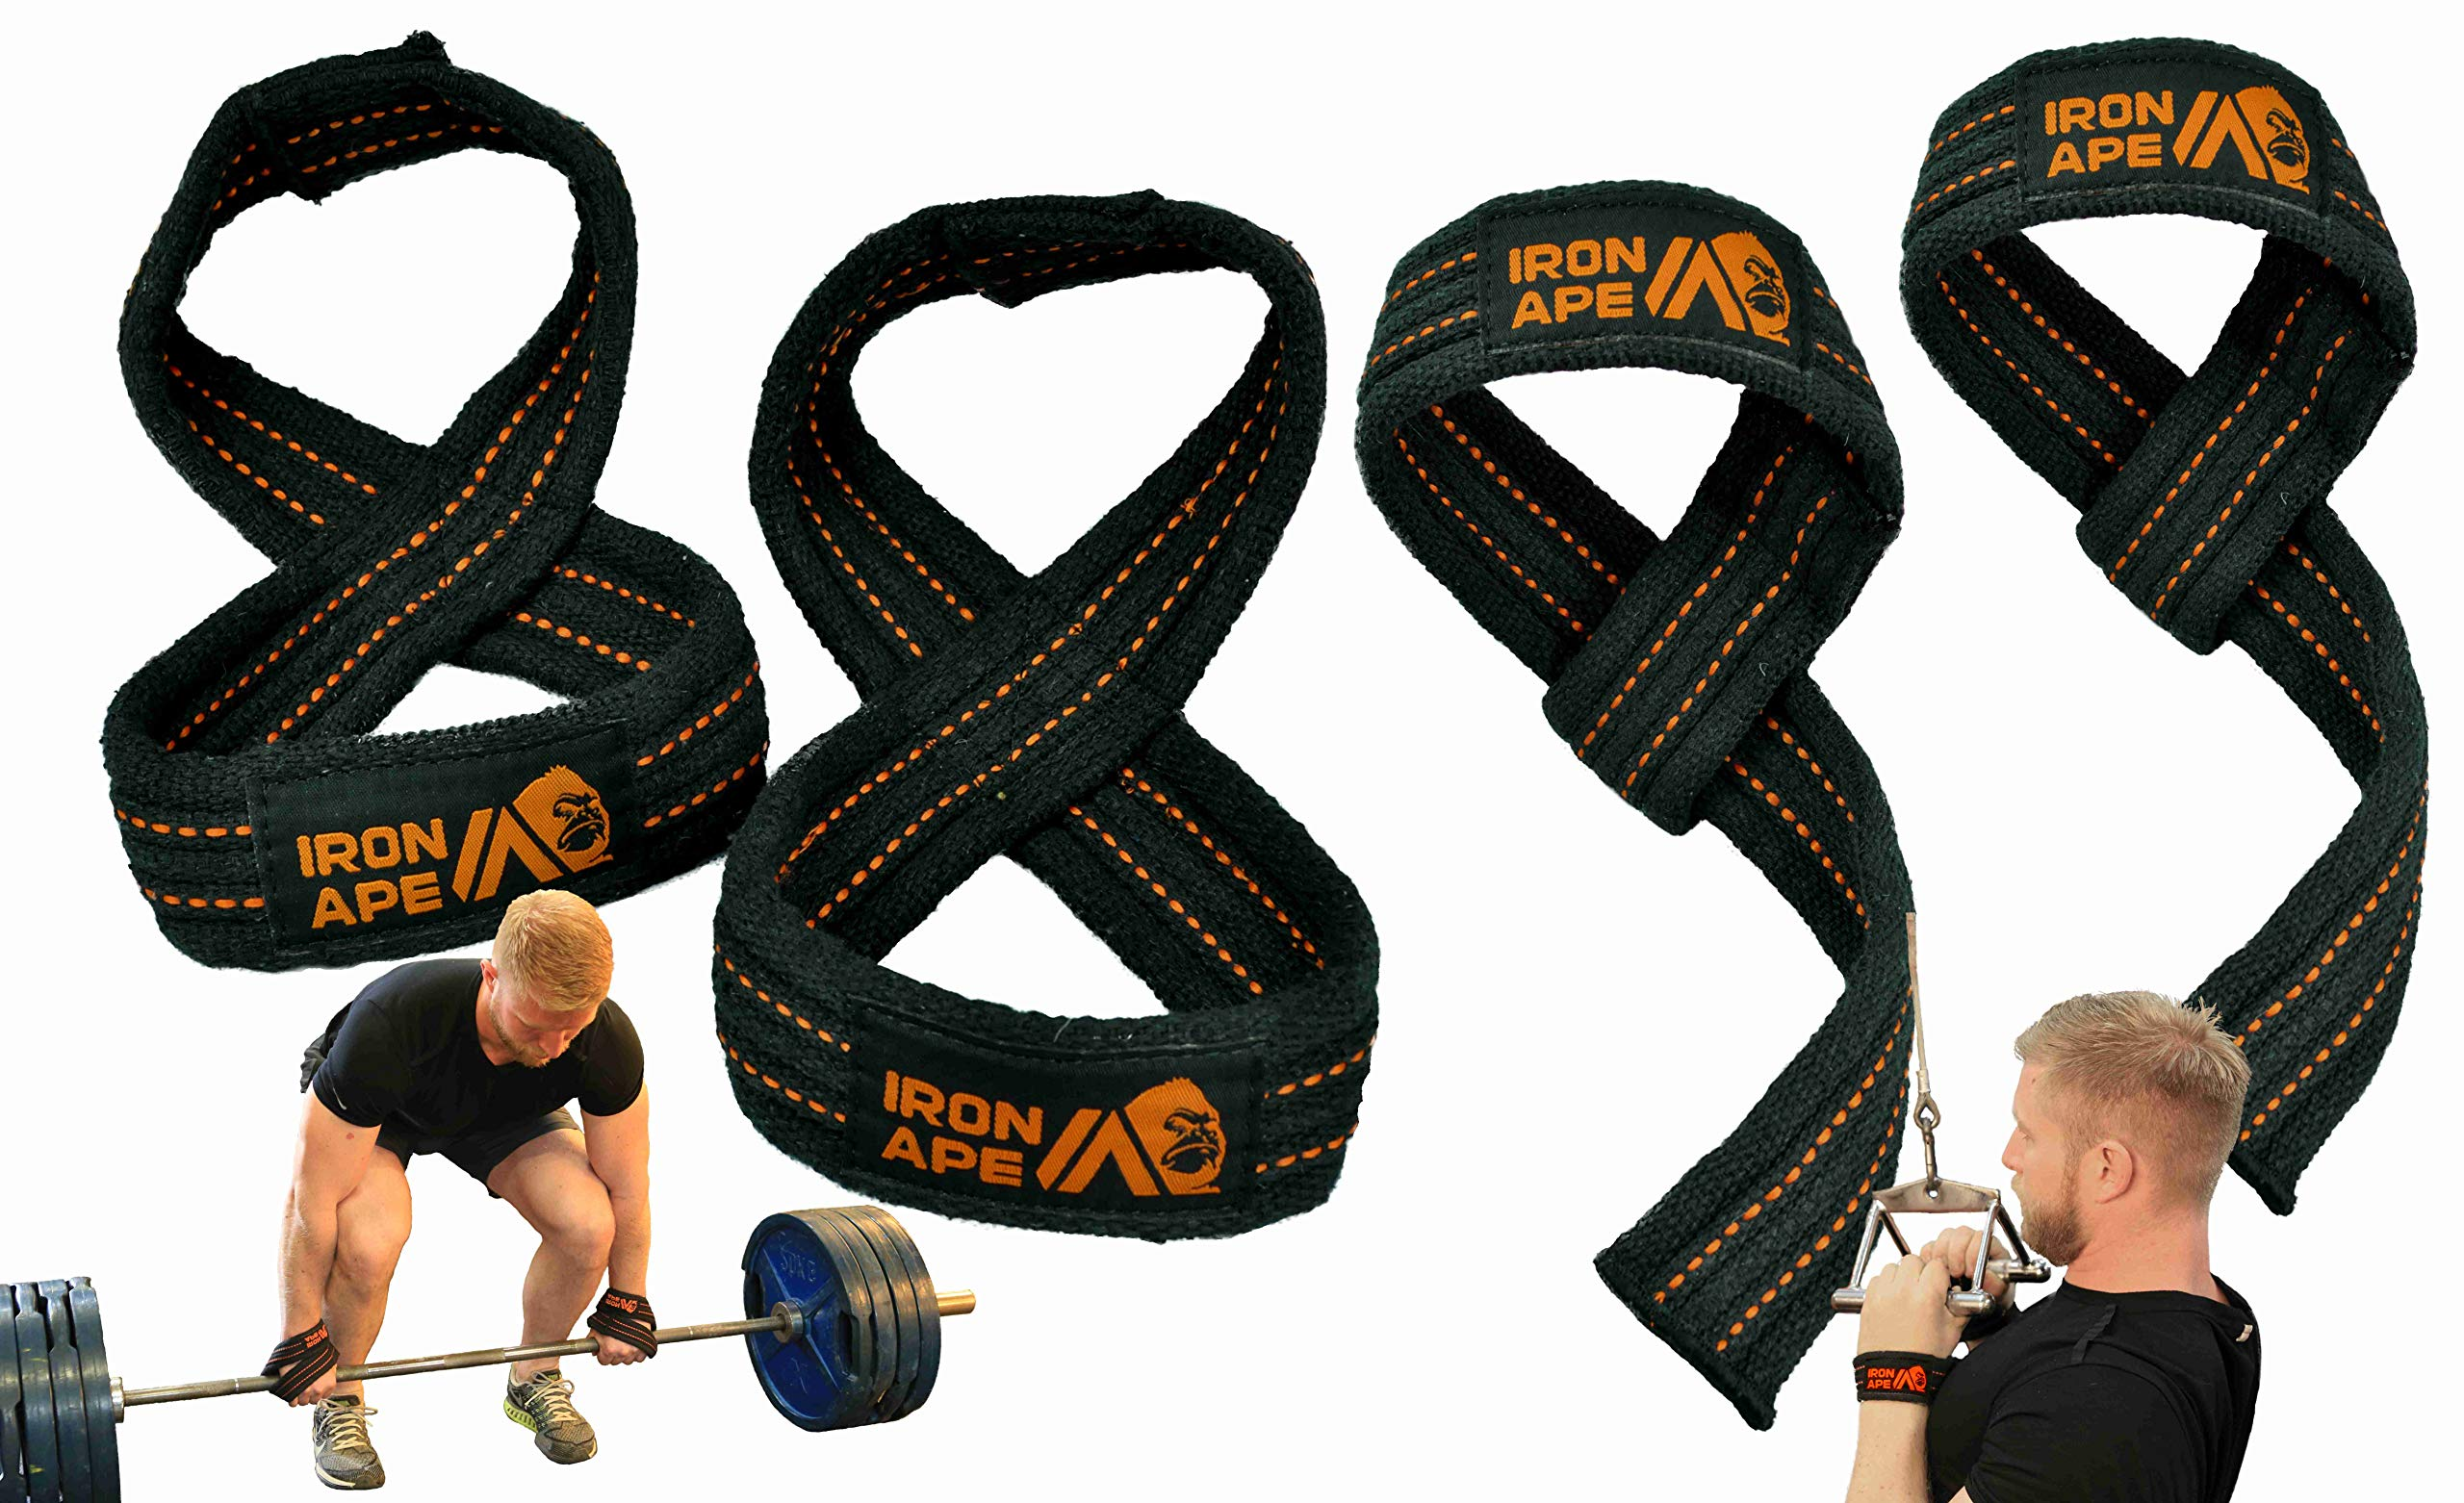 IRON APE Figure 8 Straps and Traditional Weightlifting Wrist Straps for Weight Lifting and Deadlift, Multi Pack, Cotton, 3 Sizes (Medium)